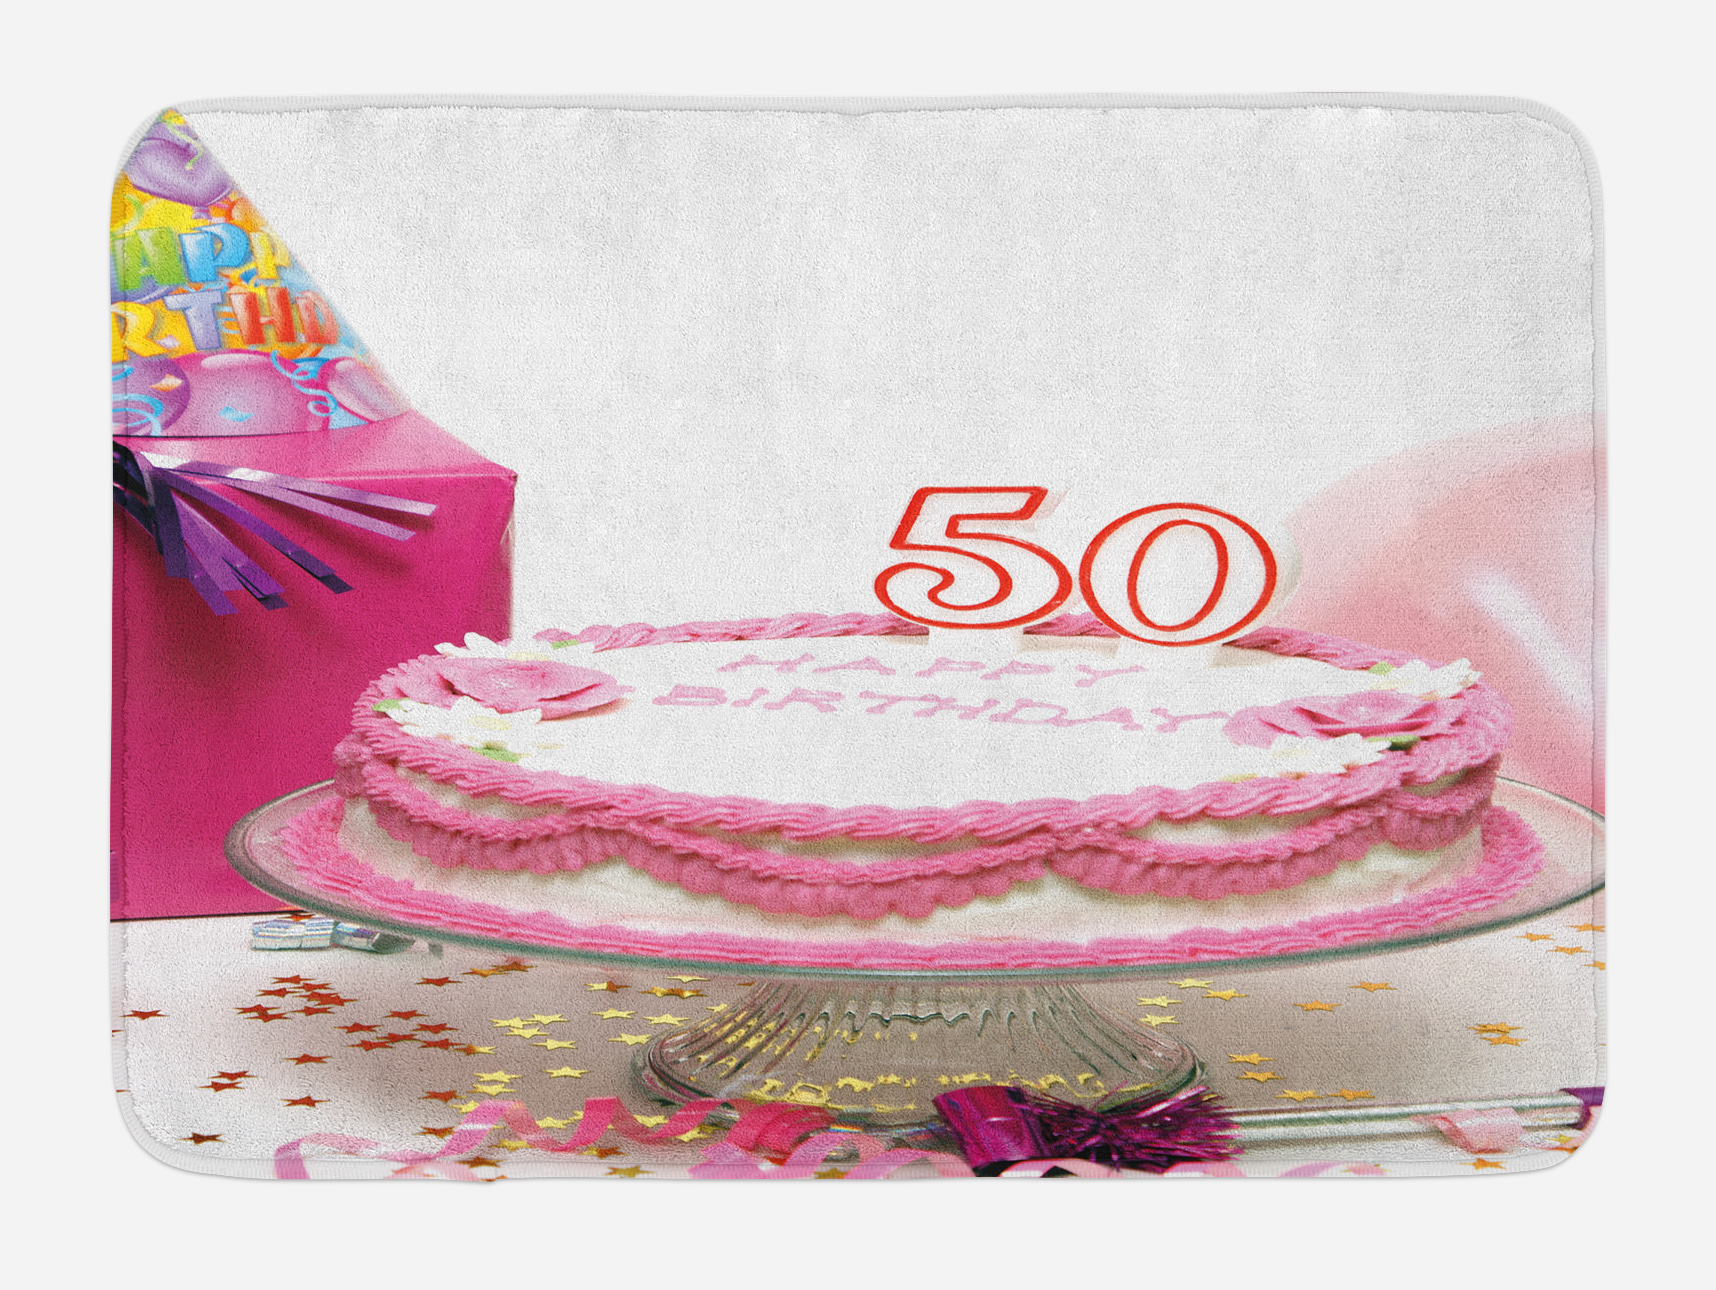 50th Birthday Bath Mat Delicious Cake With Golden Color Stars And Party Hat Presents Special Day Non Slip Plush Bathroom Kitchen Laundry Room Decor